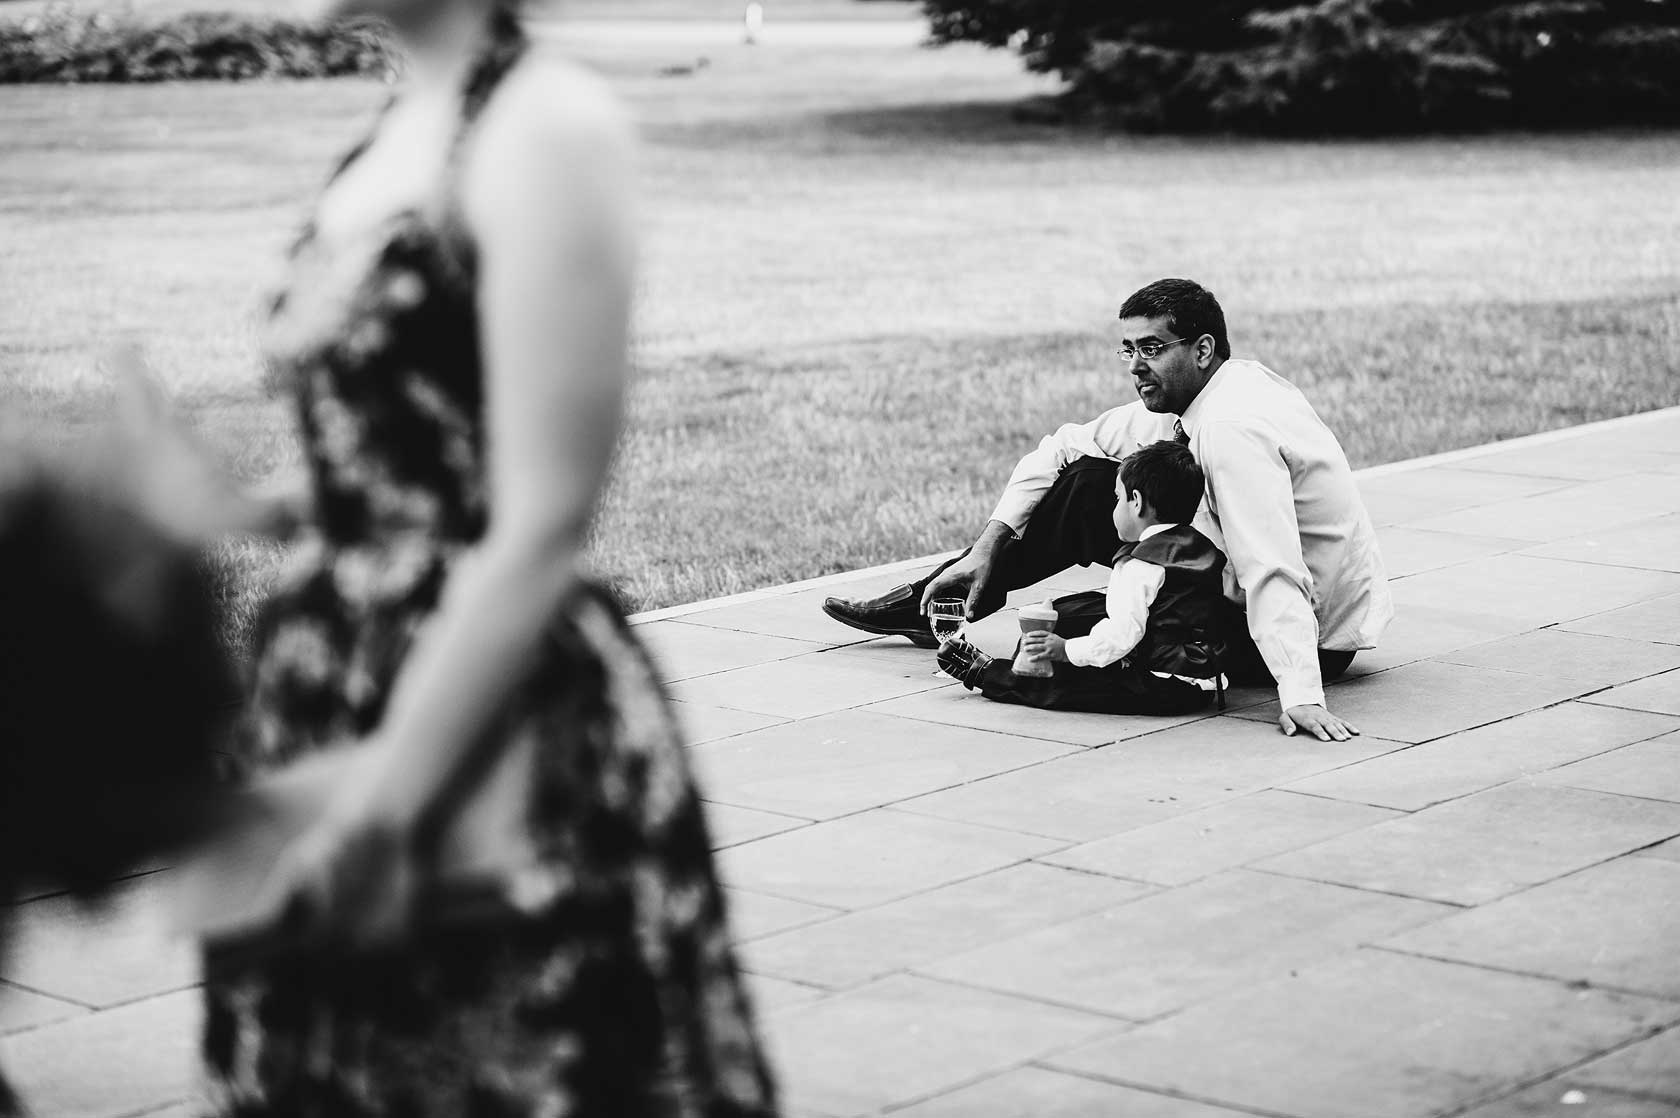 Reportage Wedding Photography at Kew Gardens